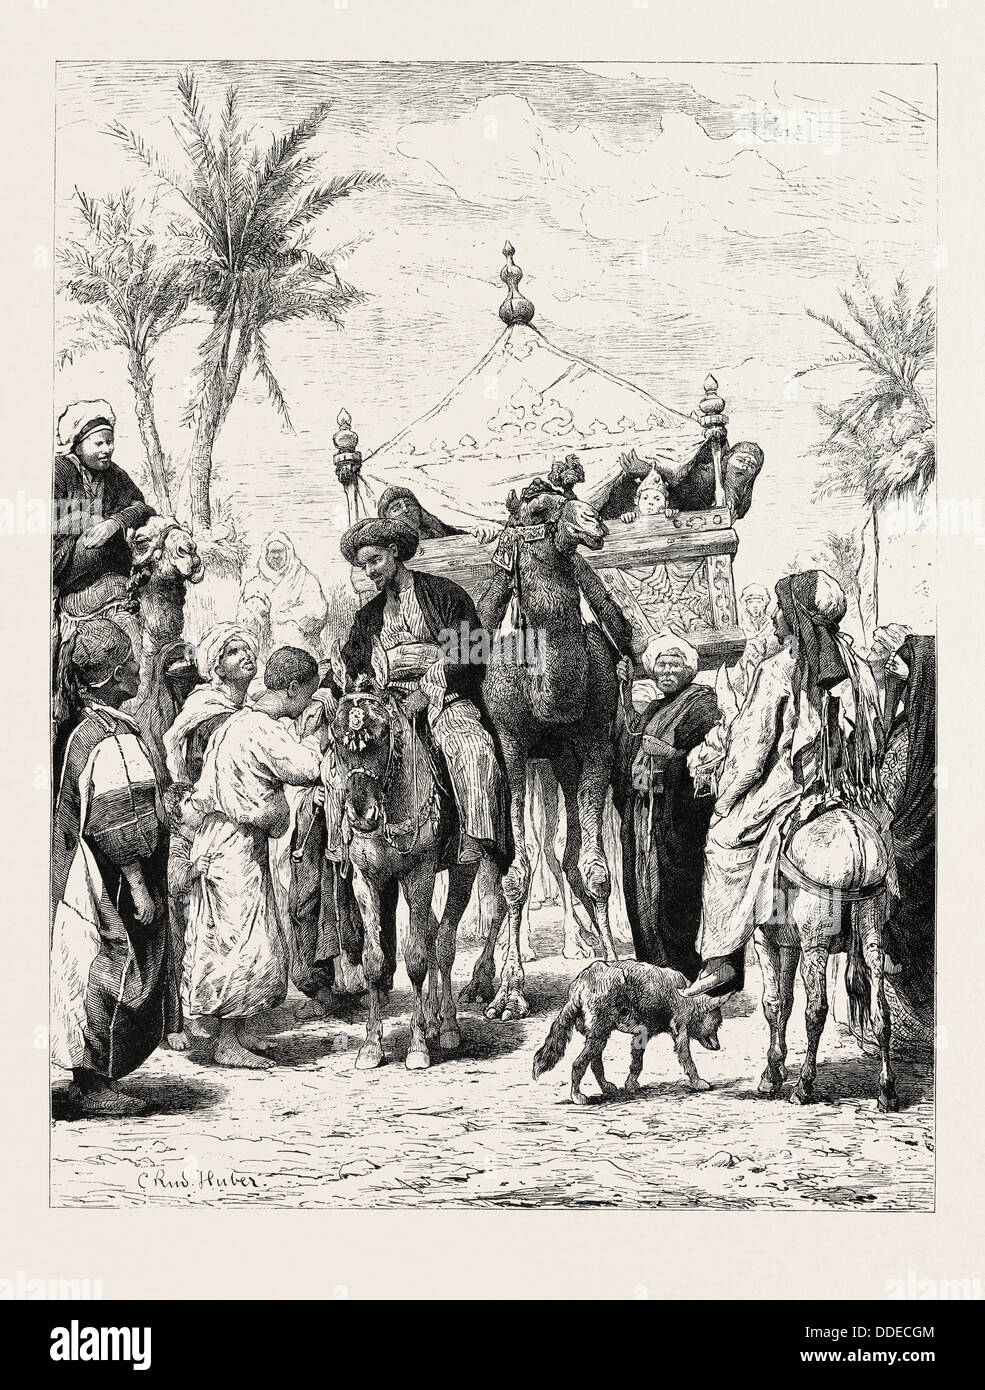 LANDED PROPRIETOR RETURNING FROM A PILGRIMAGE. Egypt, engraving 1879 - Stock Image